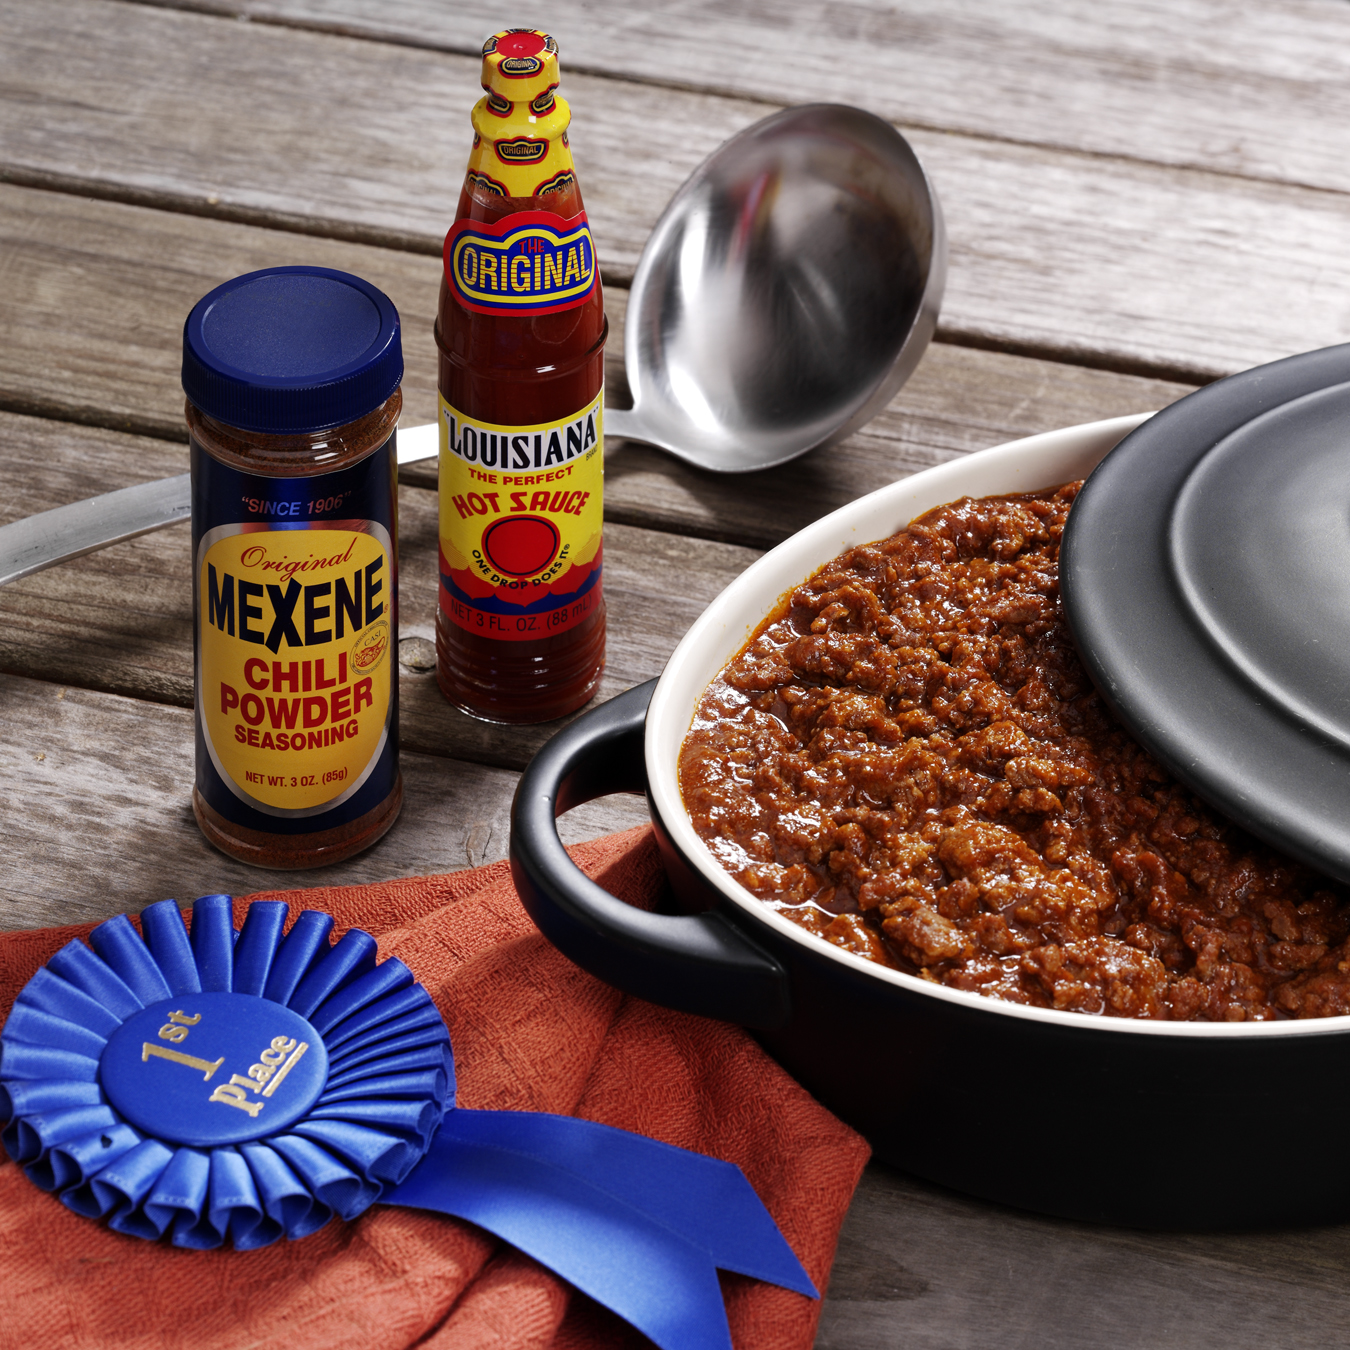 PRODUCT REVIEW + GIVEAWAY: BE A CHILI CHAMP WITH BRUCE FOODS